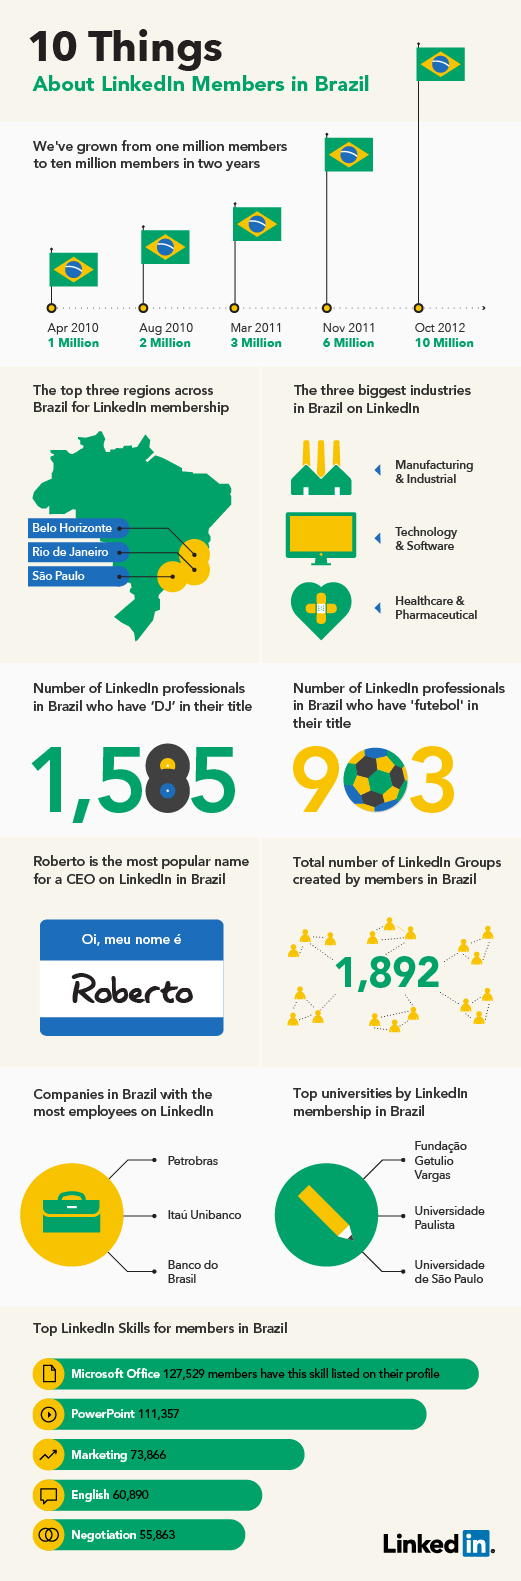 Ten Things About LinkedIn Members in Brazil Infographic